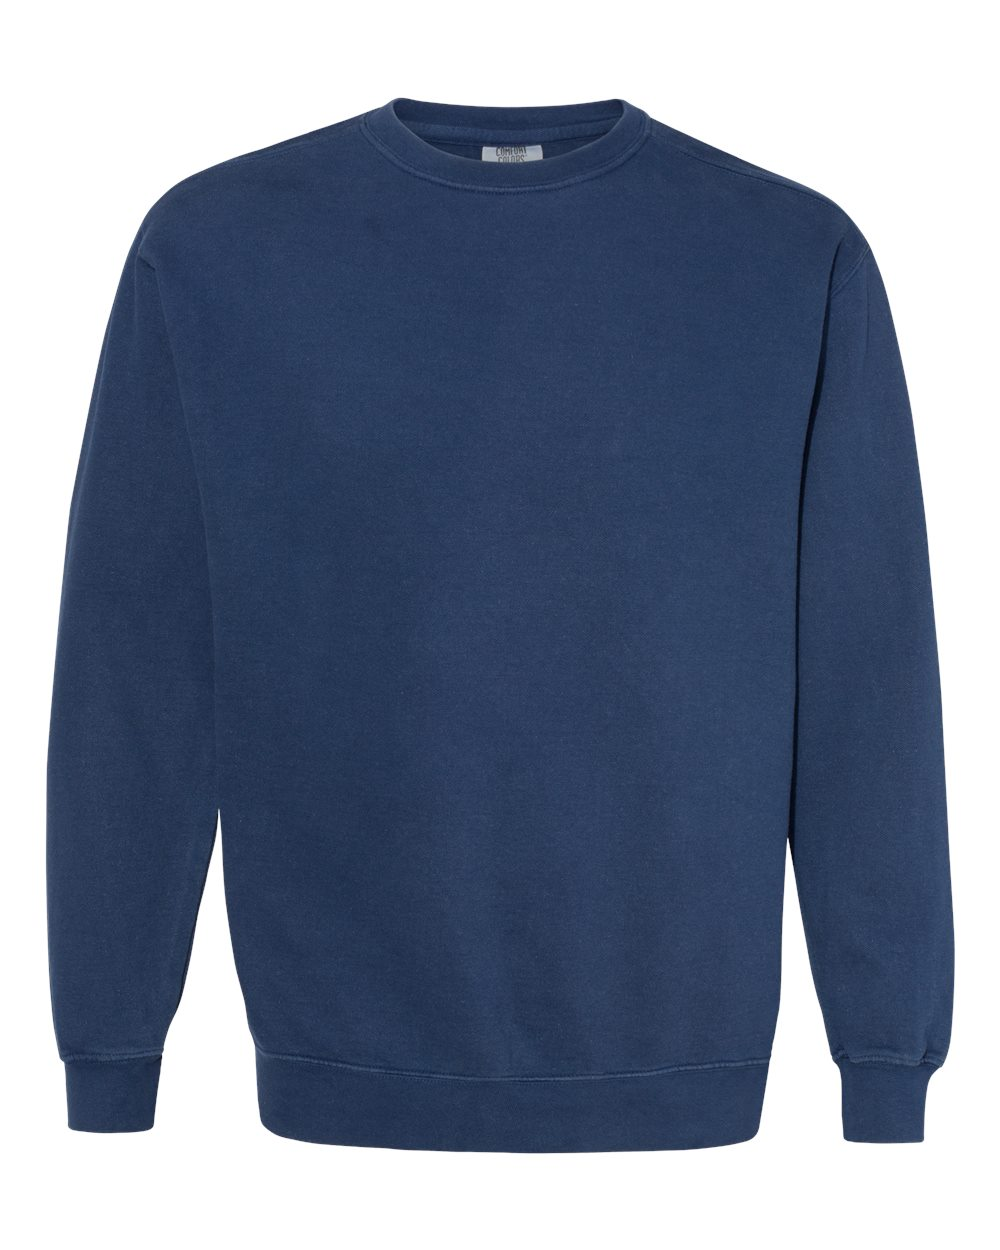 Comfort-Colors-Mens-Garment-Dyed-Ringspun-Crewneck-Sweatshirt-1566-up-to-3XL miniature 60